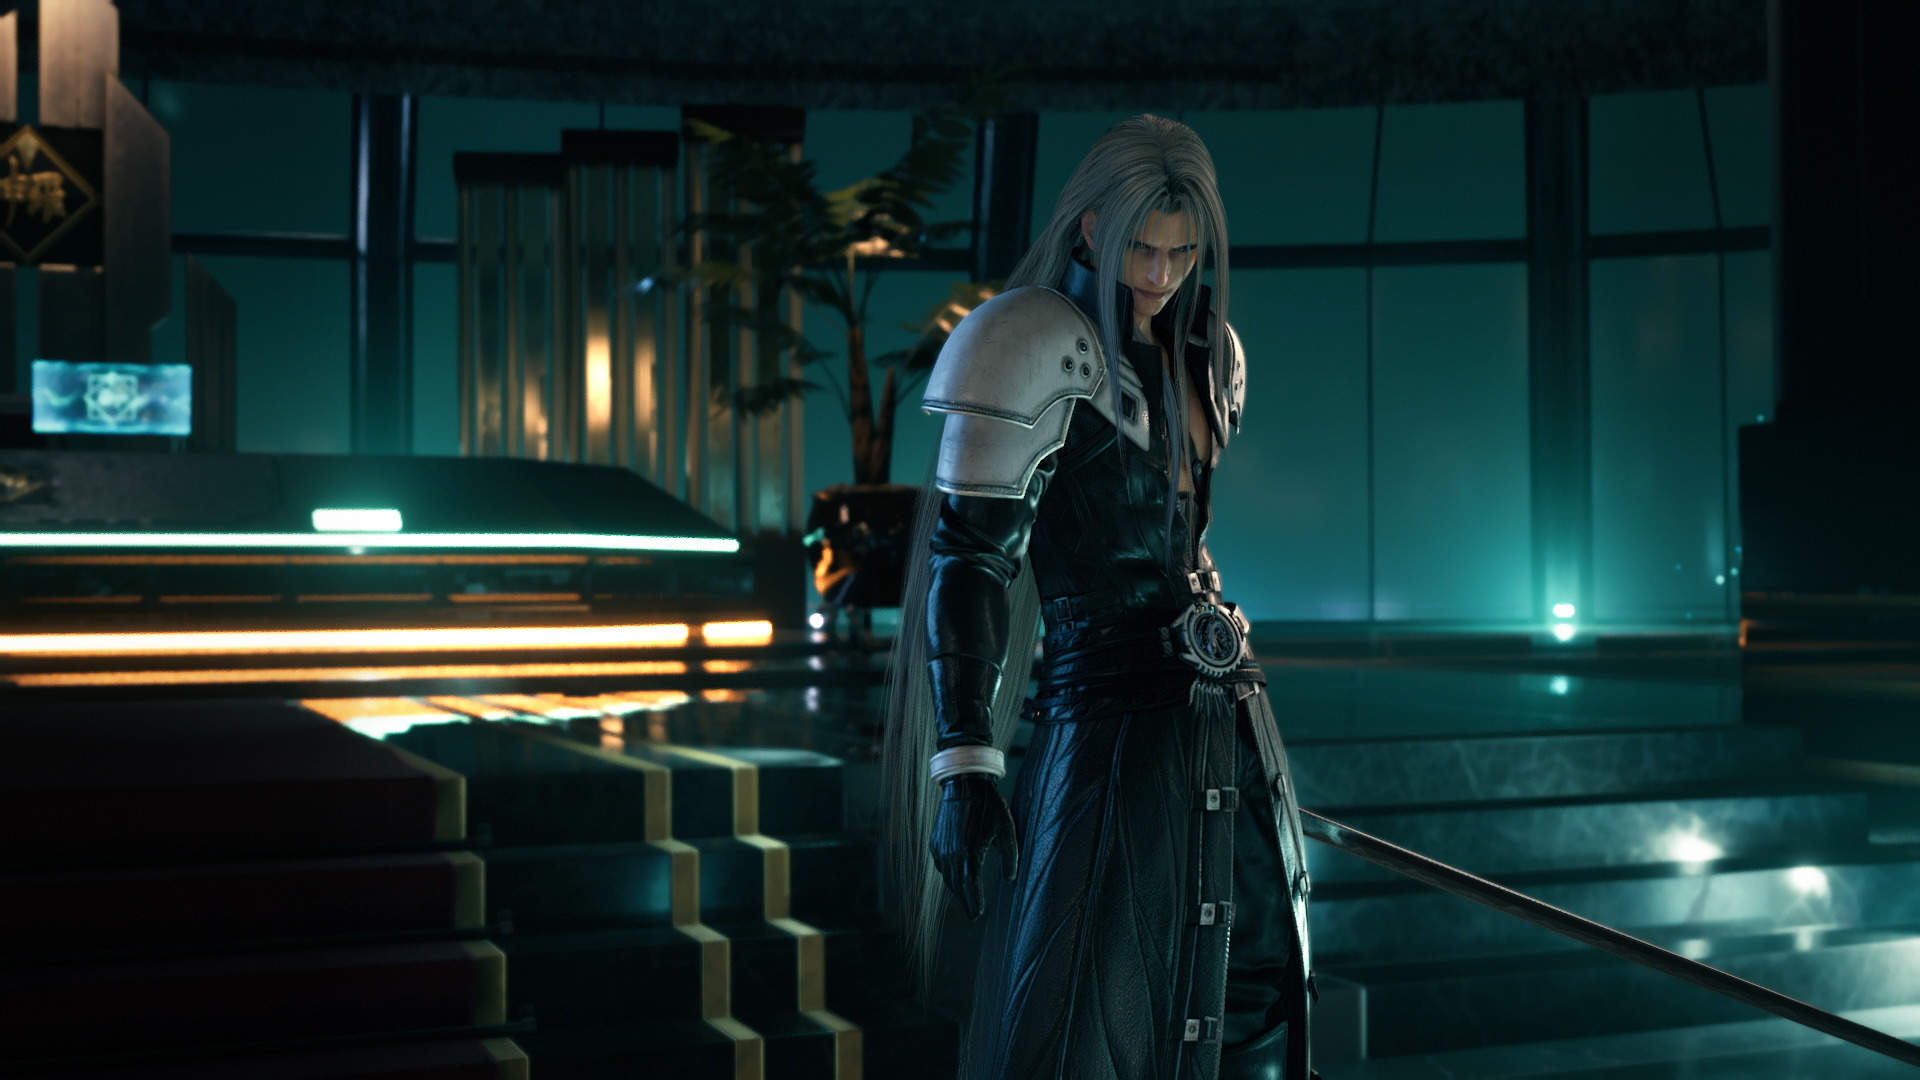 The Final Fantasy Vii Remake Official Website Now Has Avatars And